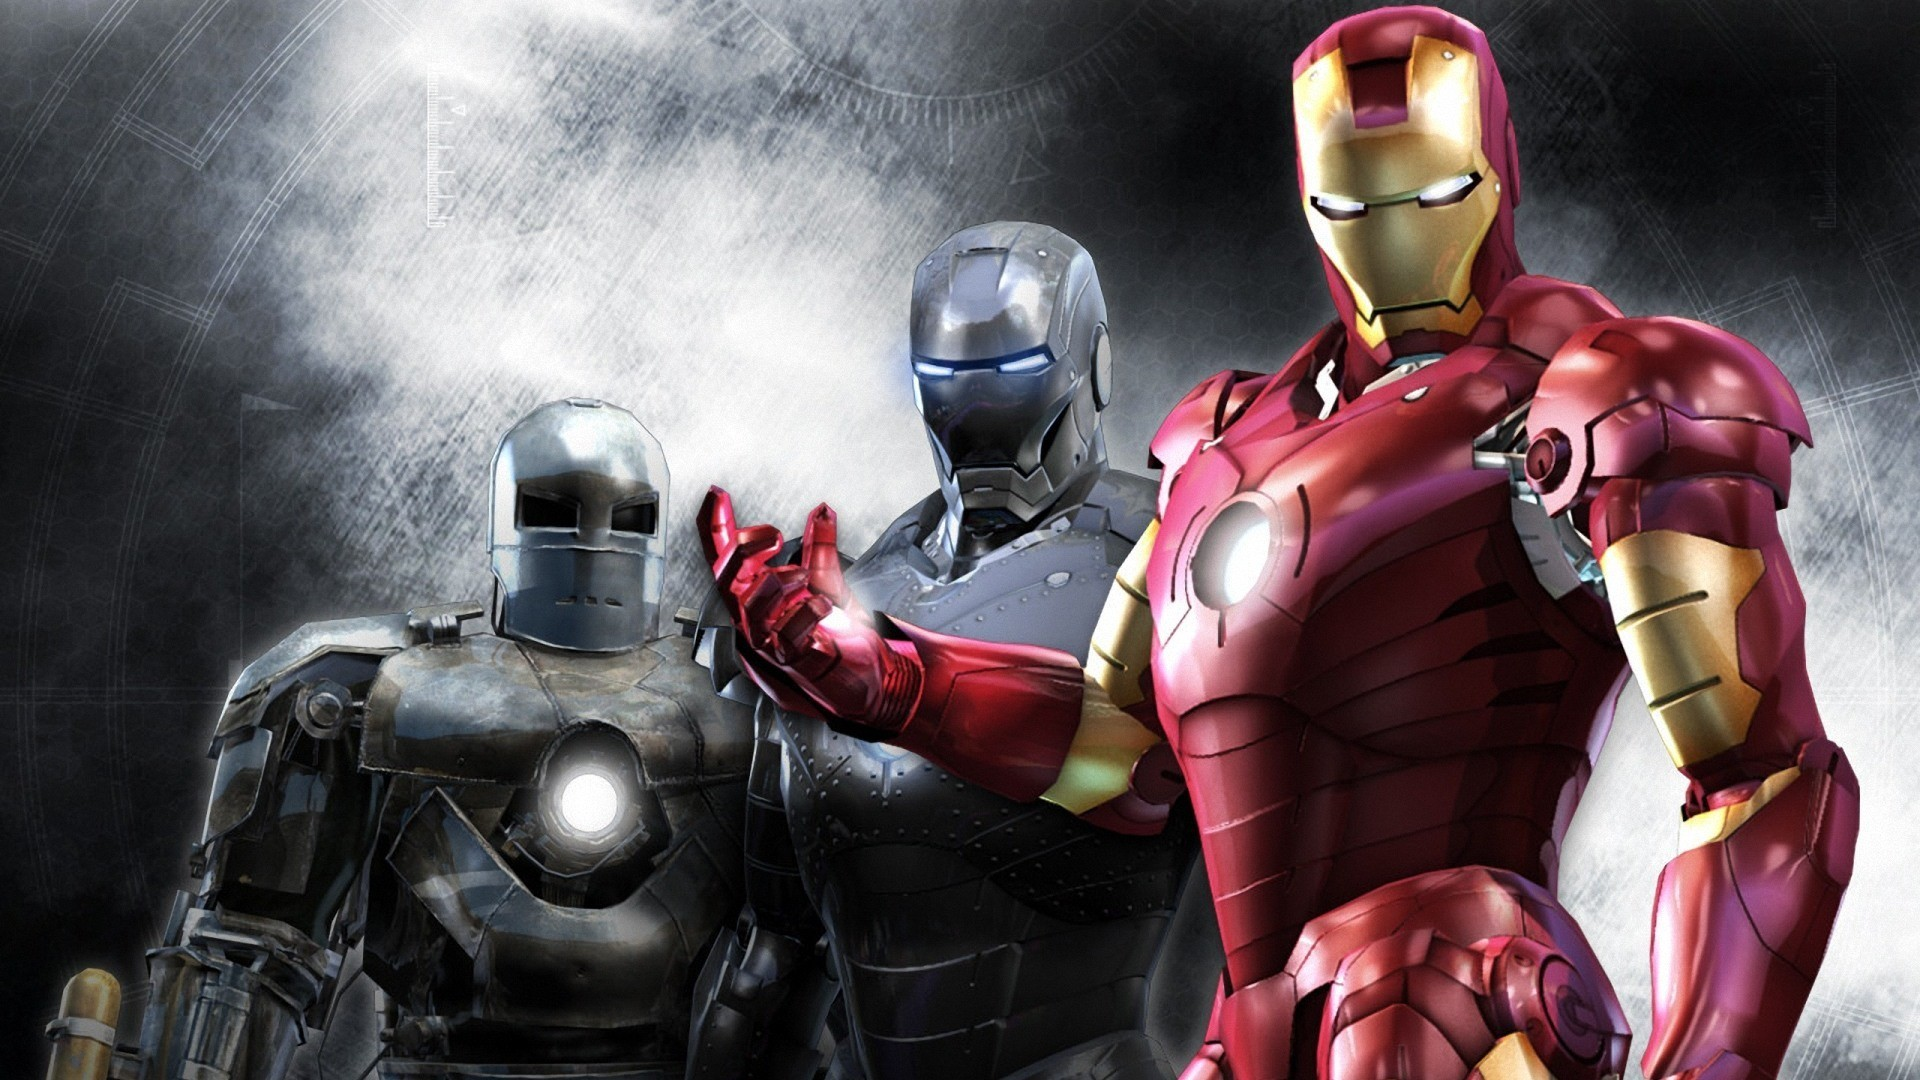 iron man suit wallpapers (75+ images)